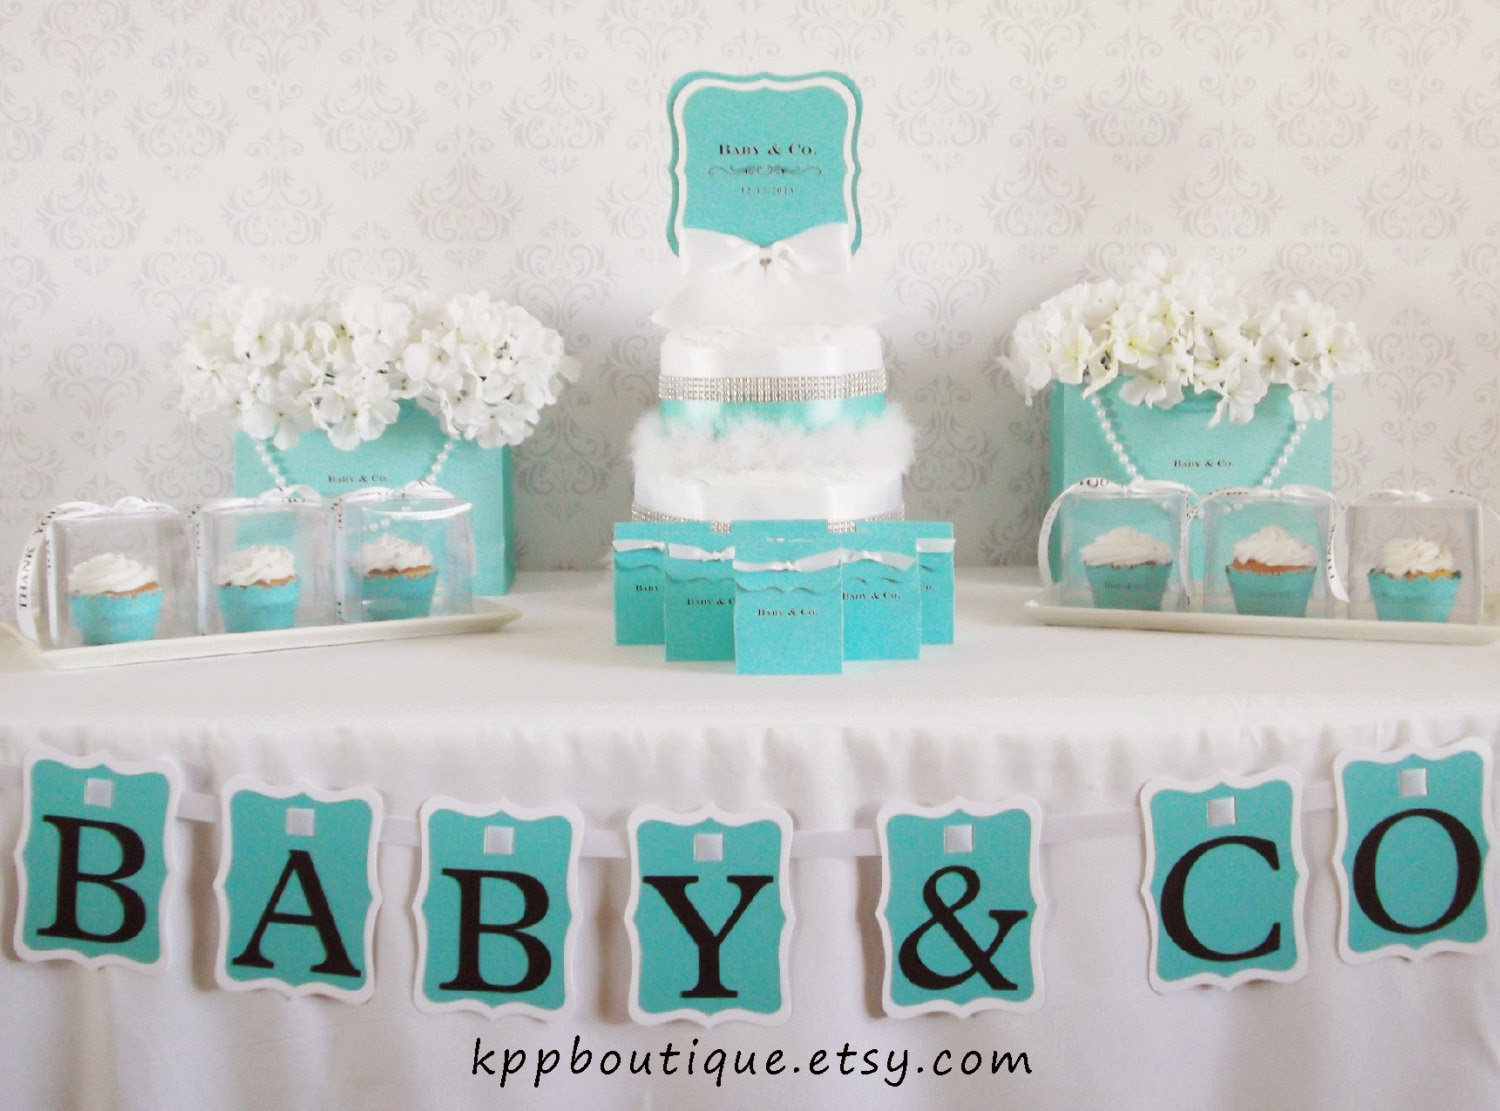 giggle bean breakfast at tiffany 39 s baby shower